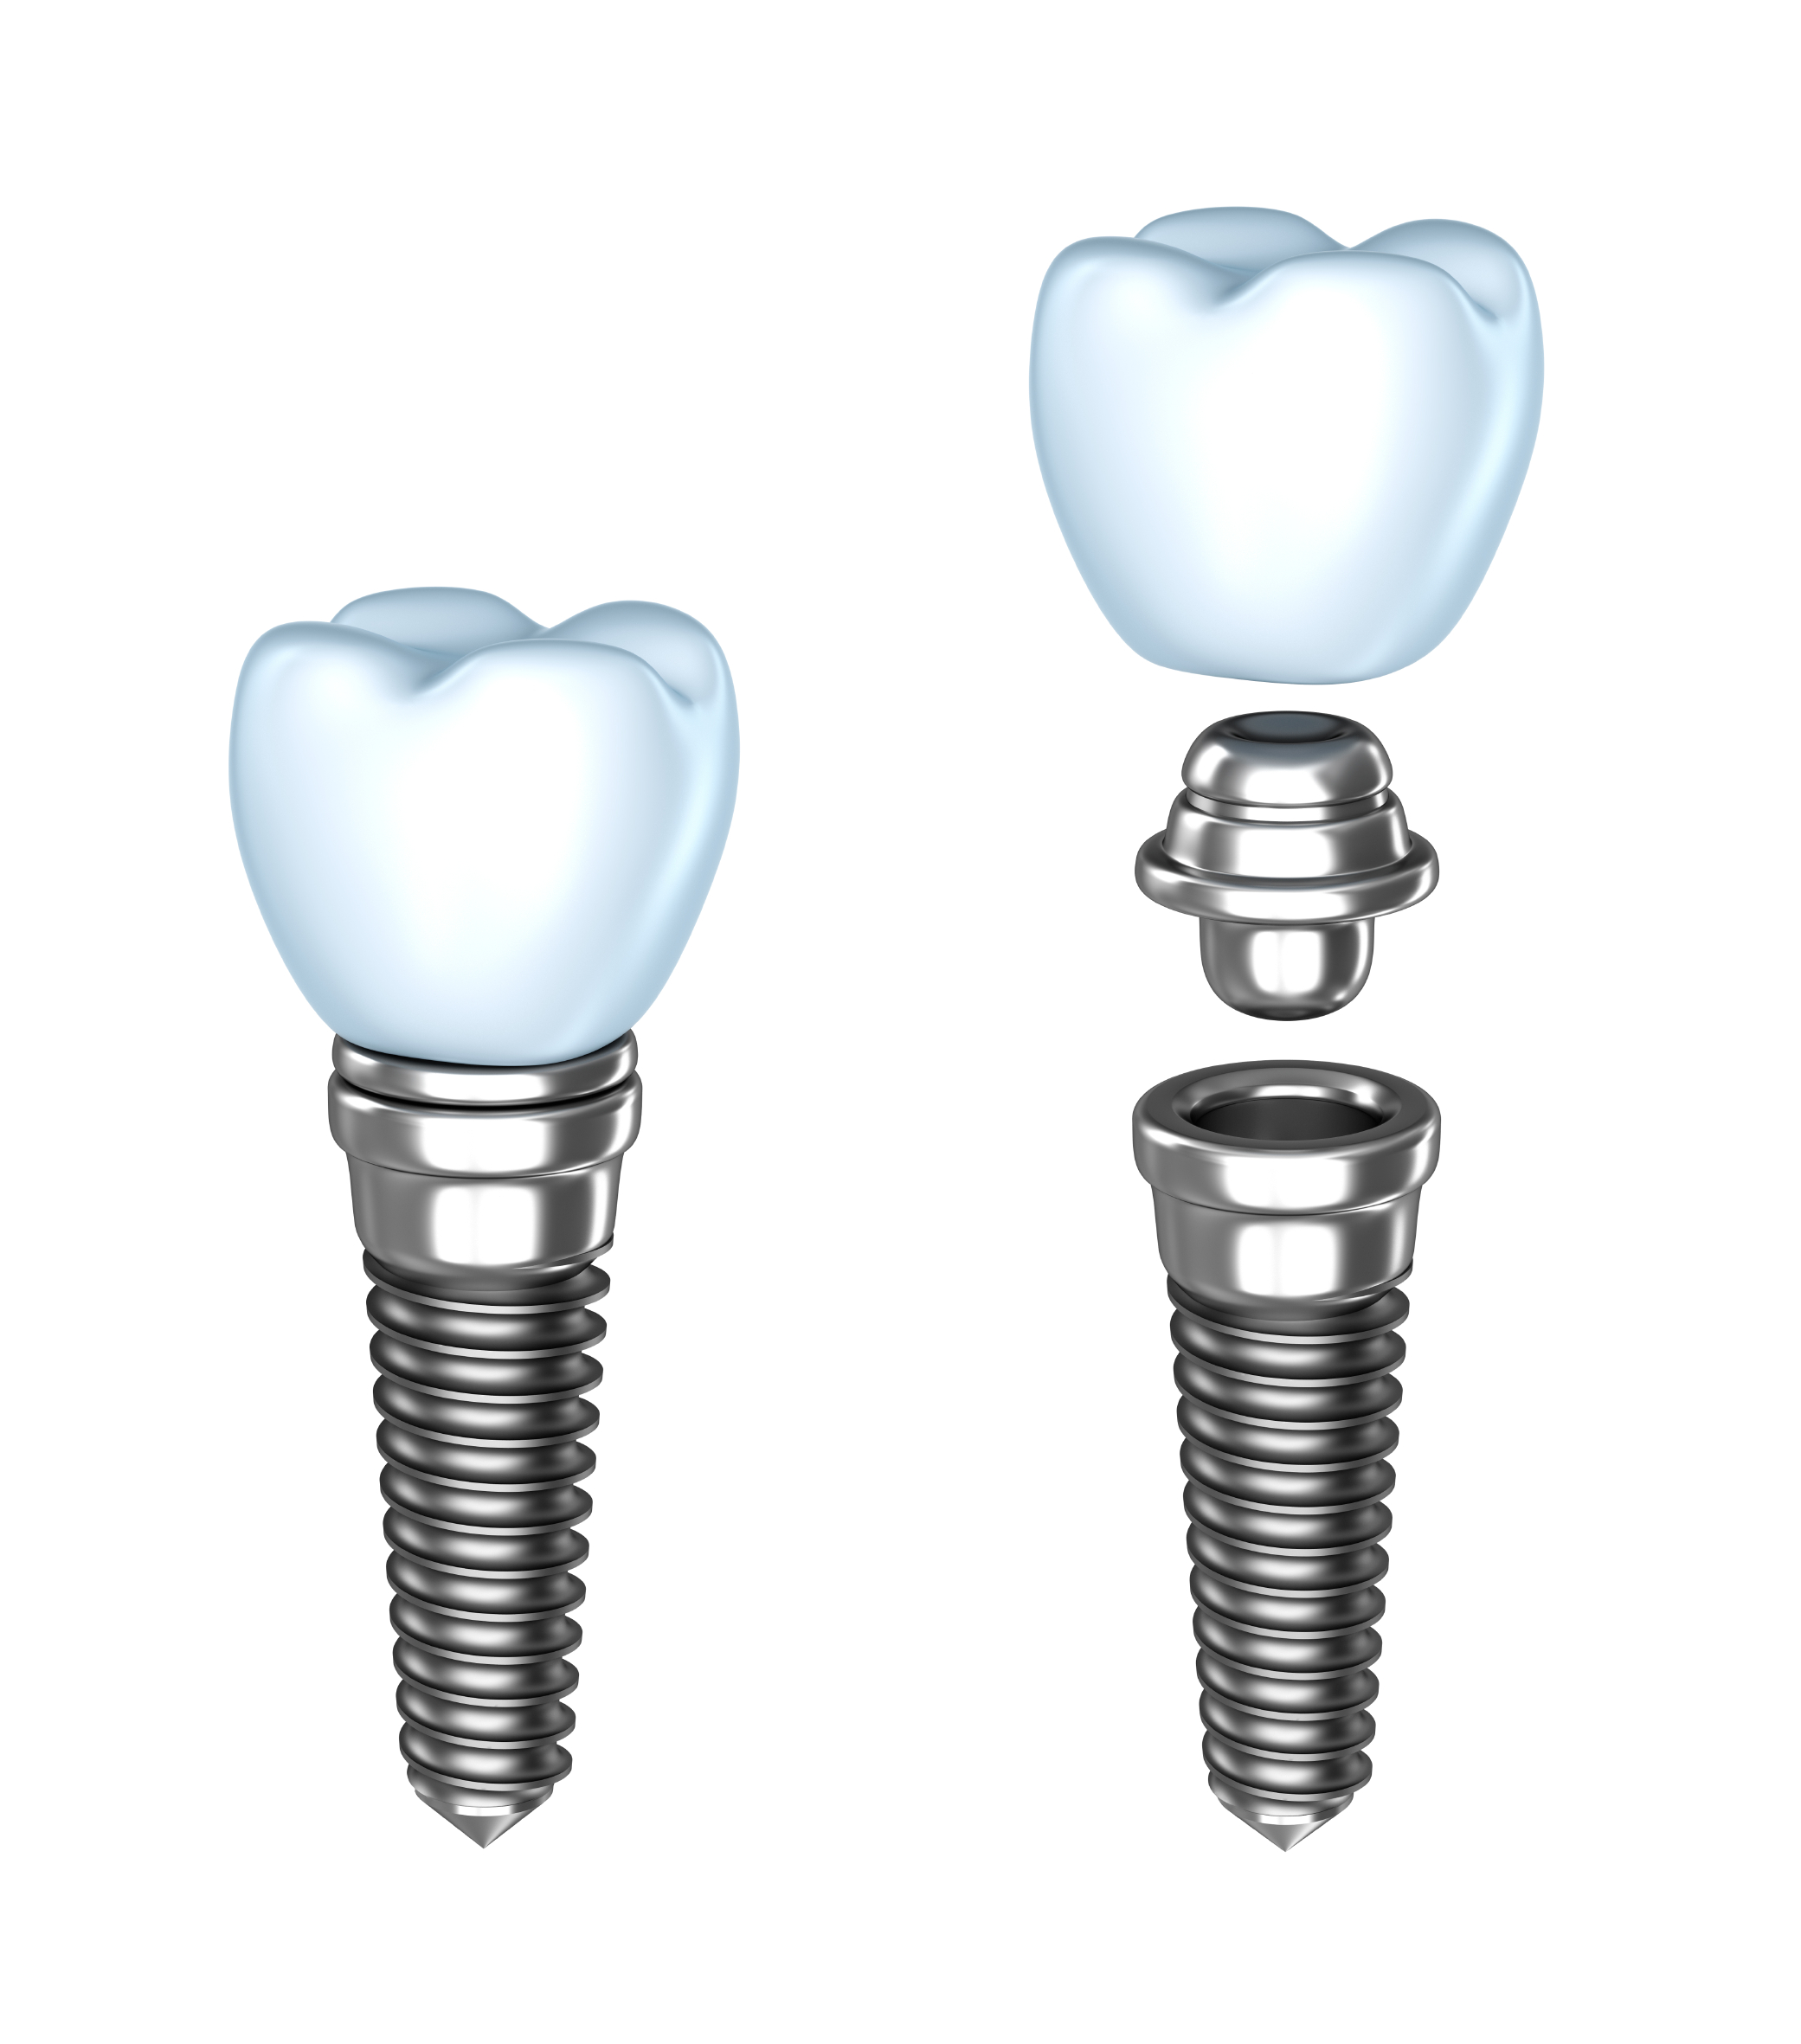 San Antonio Dental Implants and All-on-4 at Voigt Family Dentistry